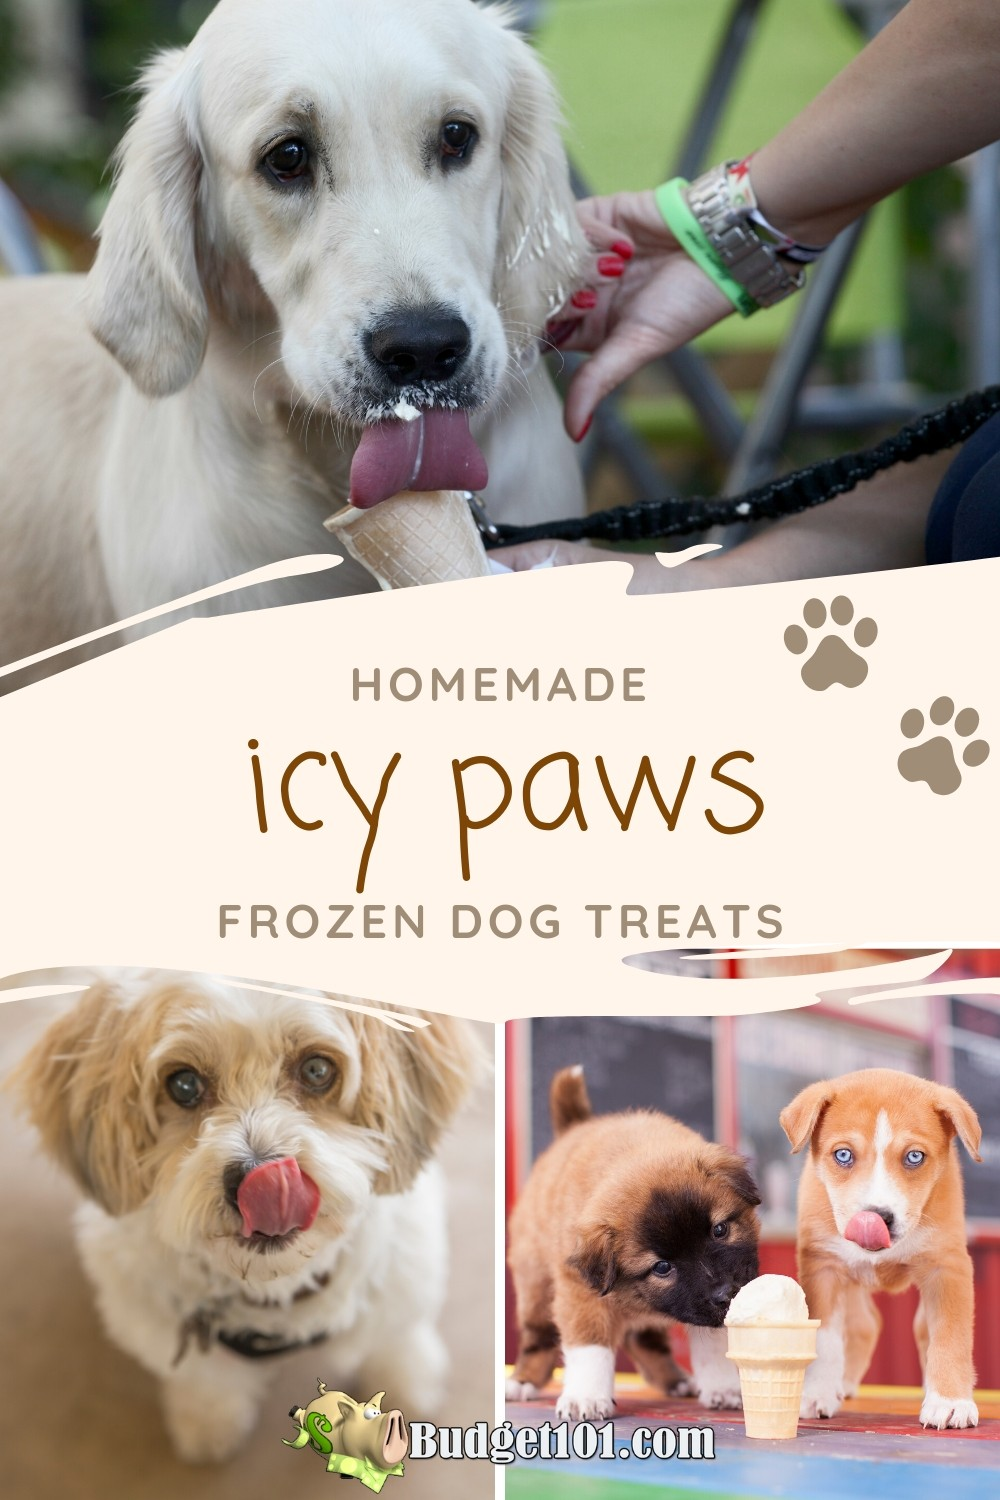 Create delicious homemade Icy Paw treats for your beloved dog! #Budget101 #DirtCheap #MYO #DogsLife #Summerfun